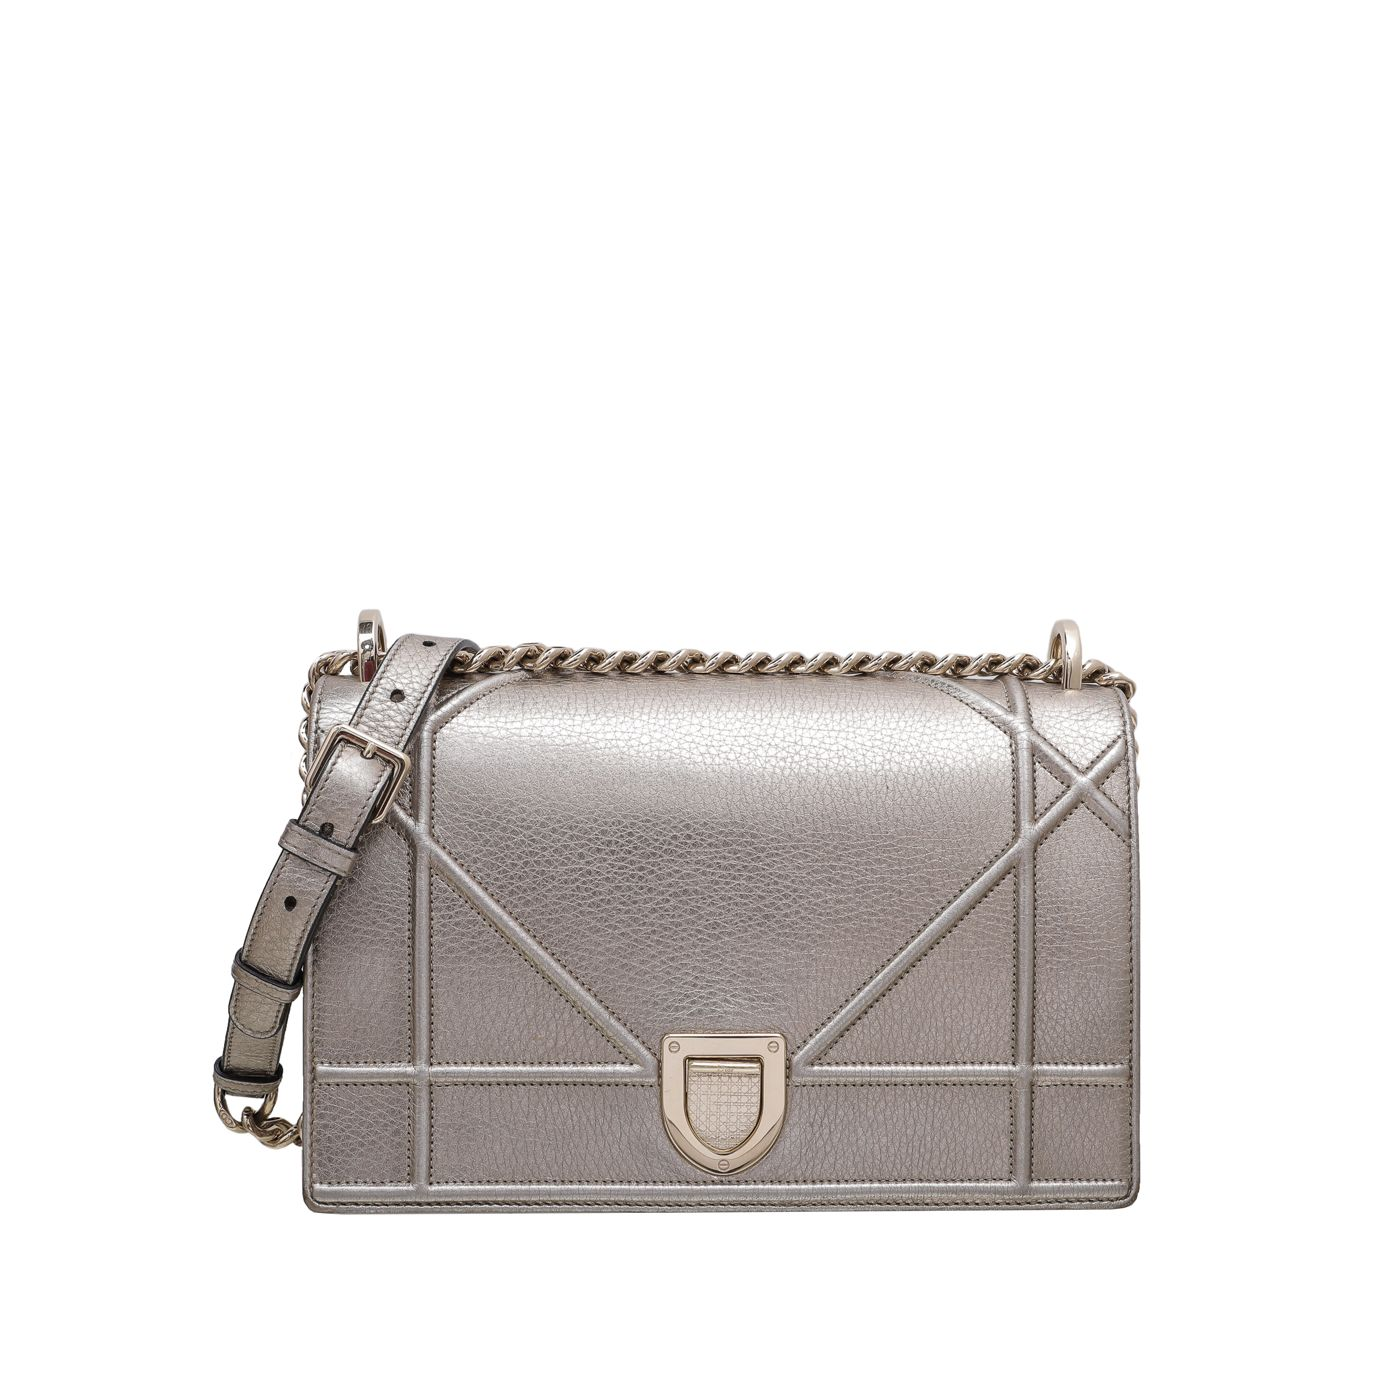 Christian Dior Champagne Diorama Medium Bag